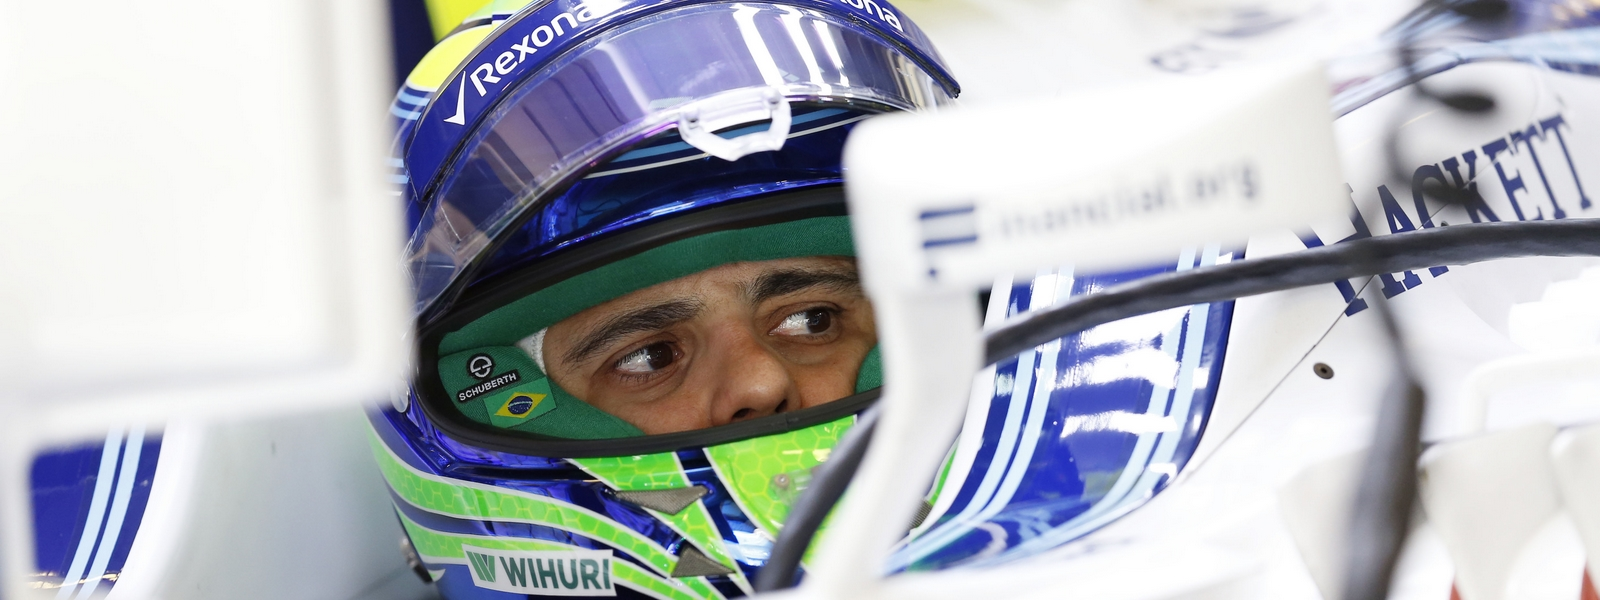 Motorsports: FIA Formula One World Championship 2016, F1 race in Abu Dhabi,  #19 Felipe Massa (BRA, Williams Martini Racing),  *** Local Caption *** +++ www.hoch-zwei.net +++ copyright: HOCH ZWEI +++